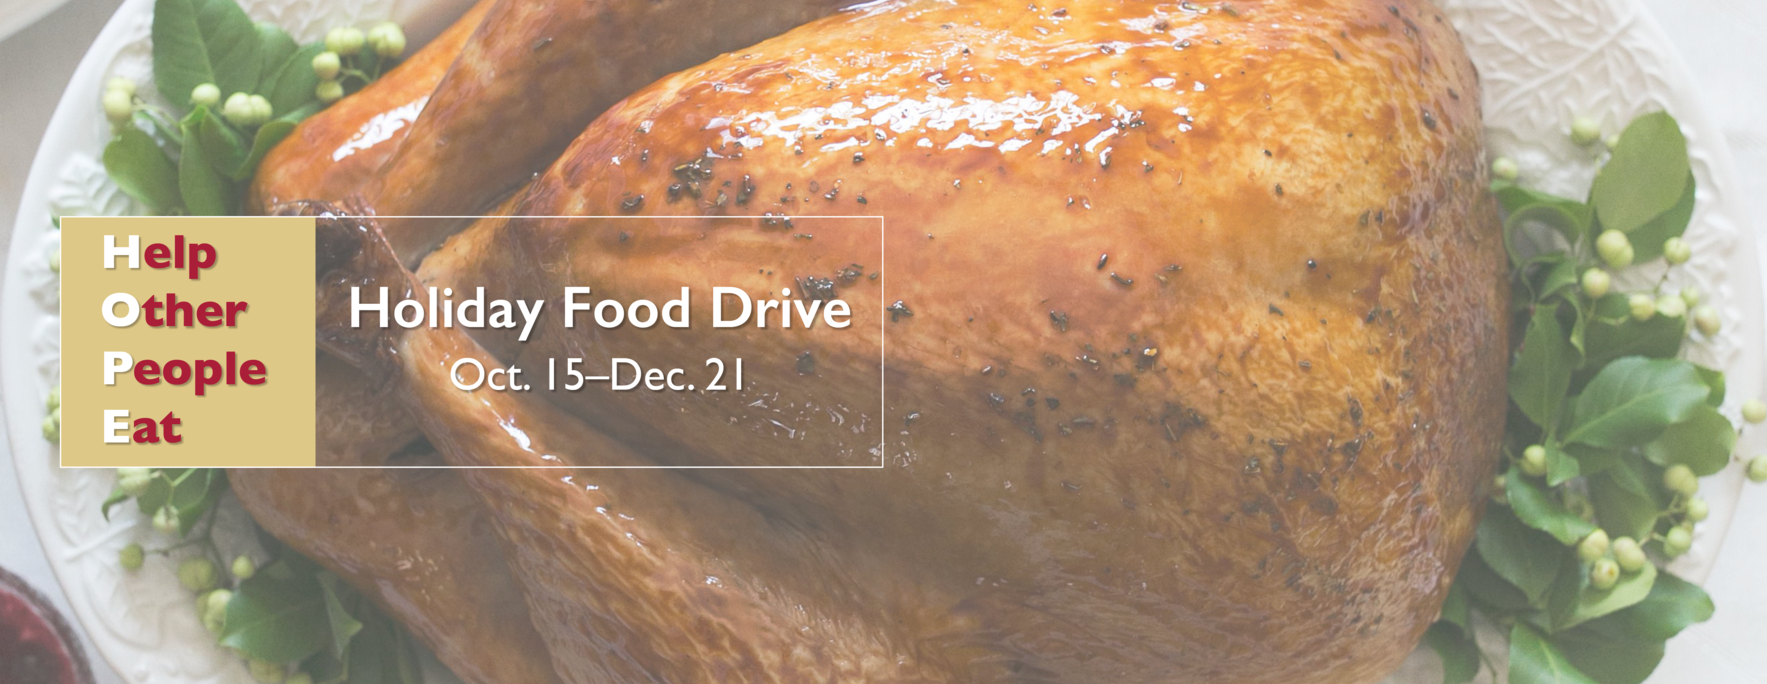 Help Other People Eat with a generous $30 donation.   image